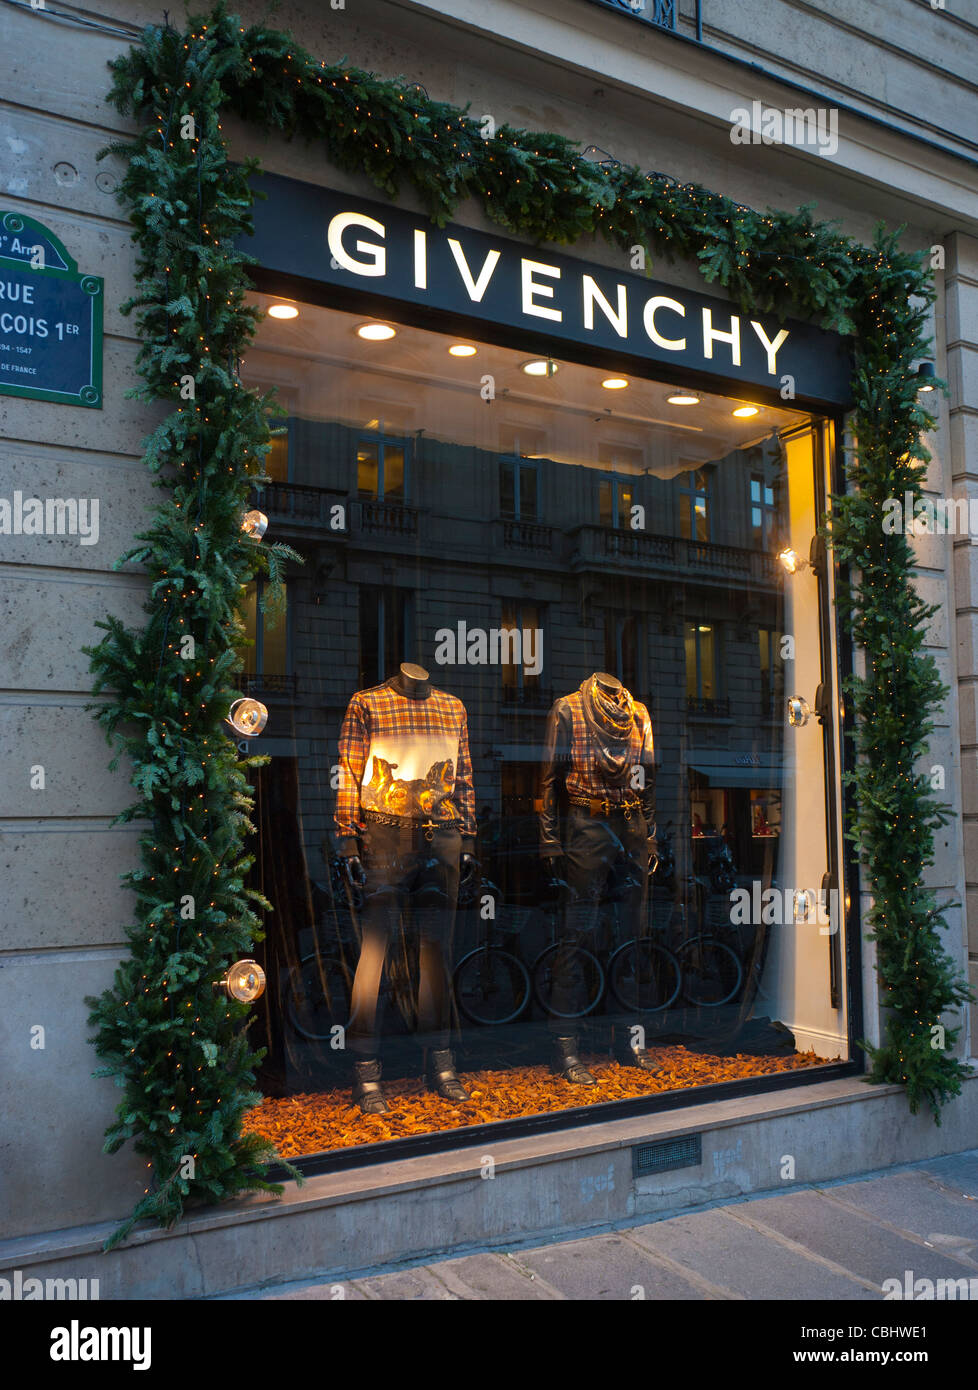 50th and france clothing stores